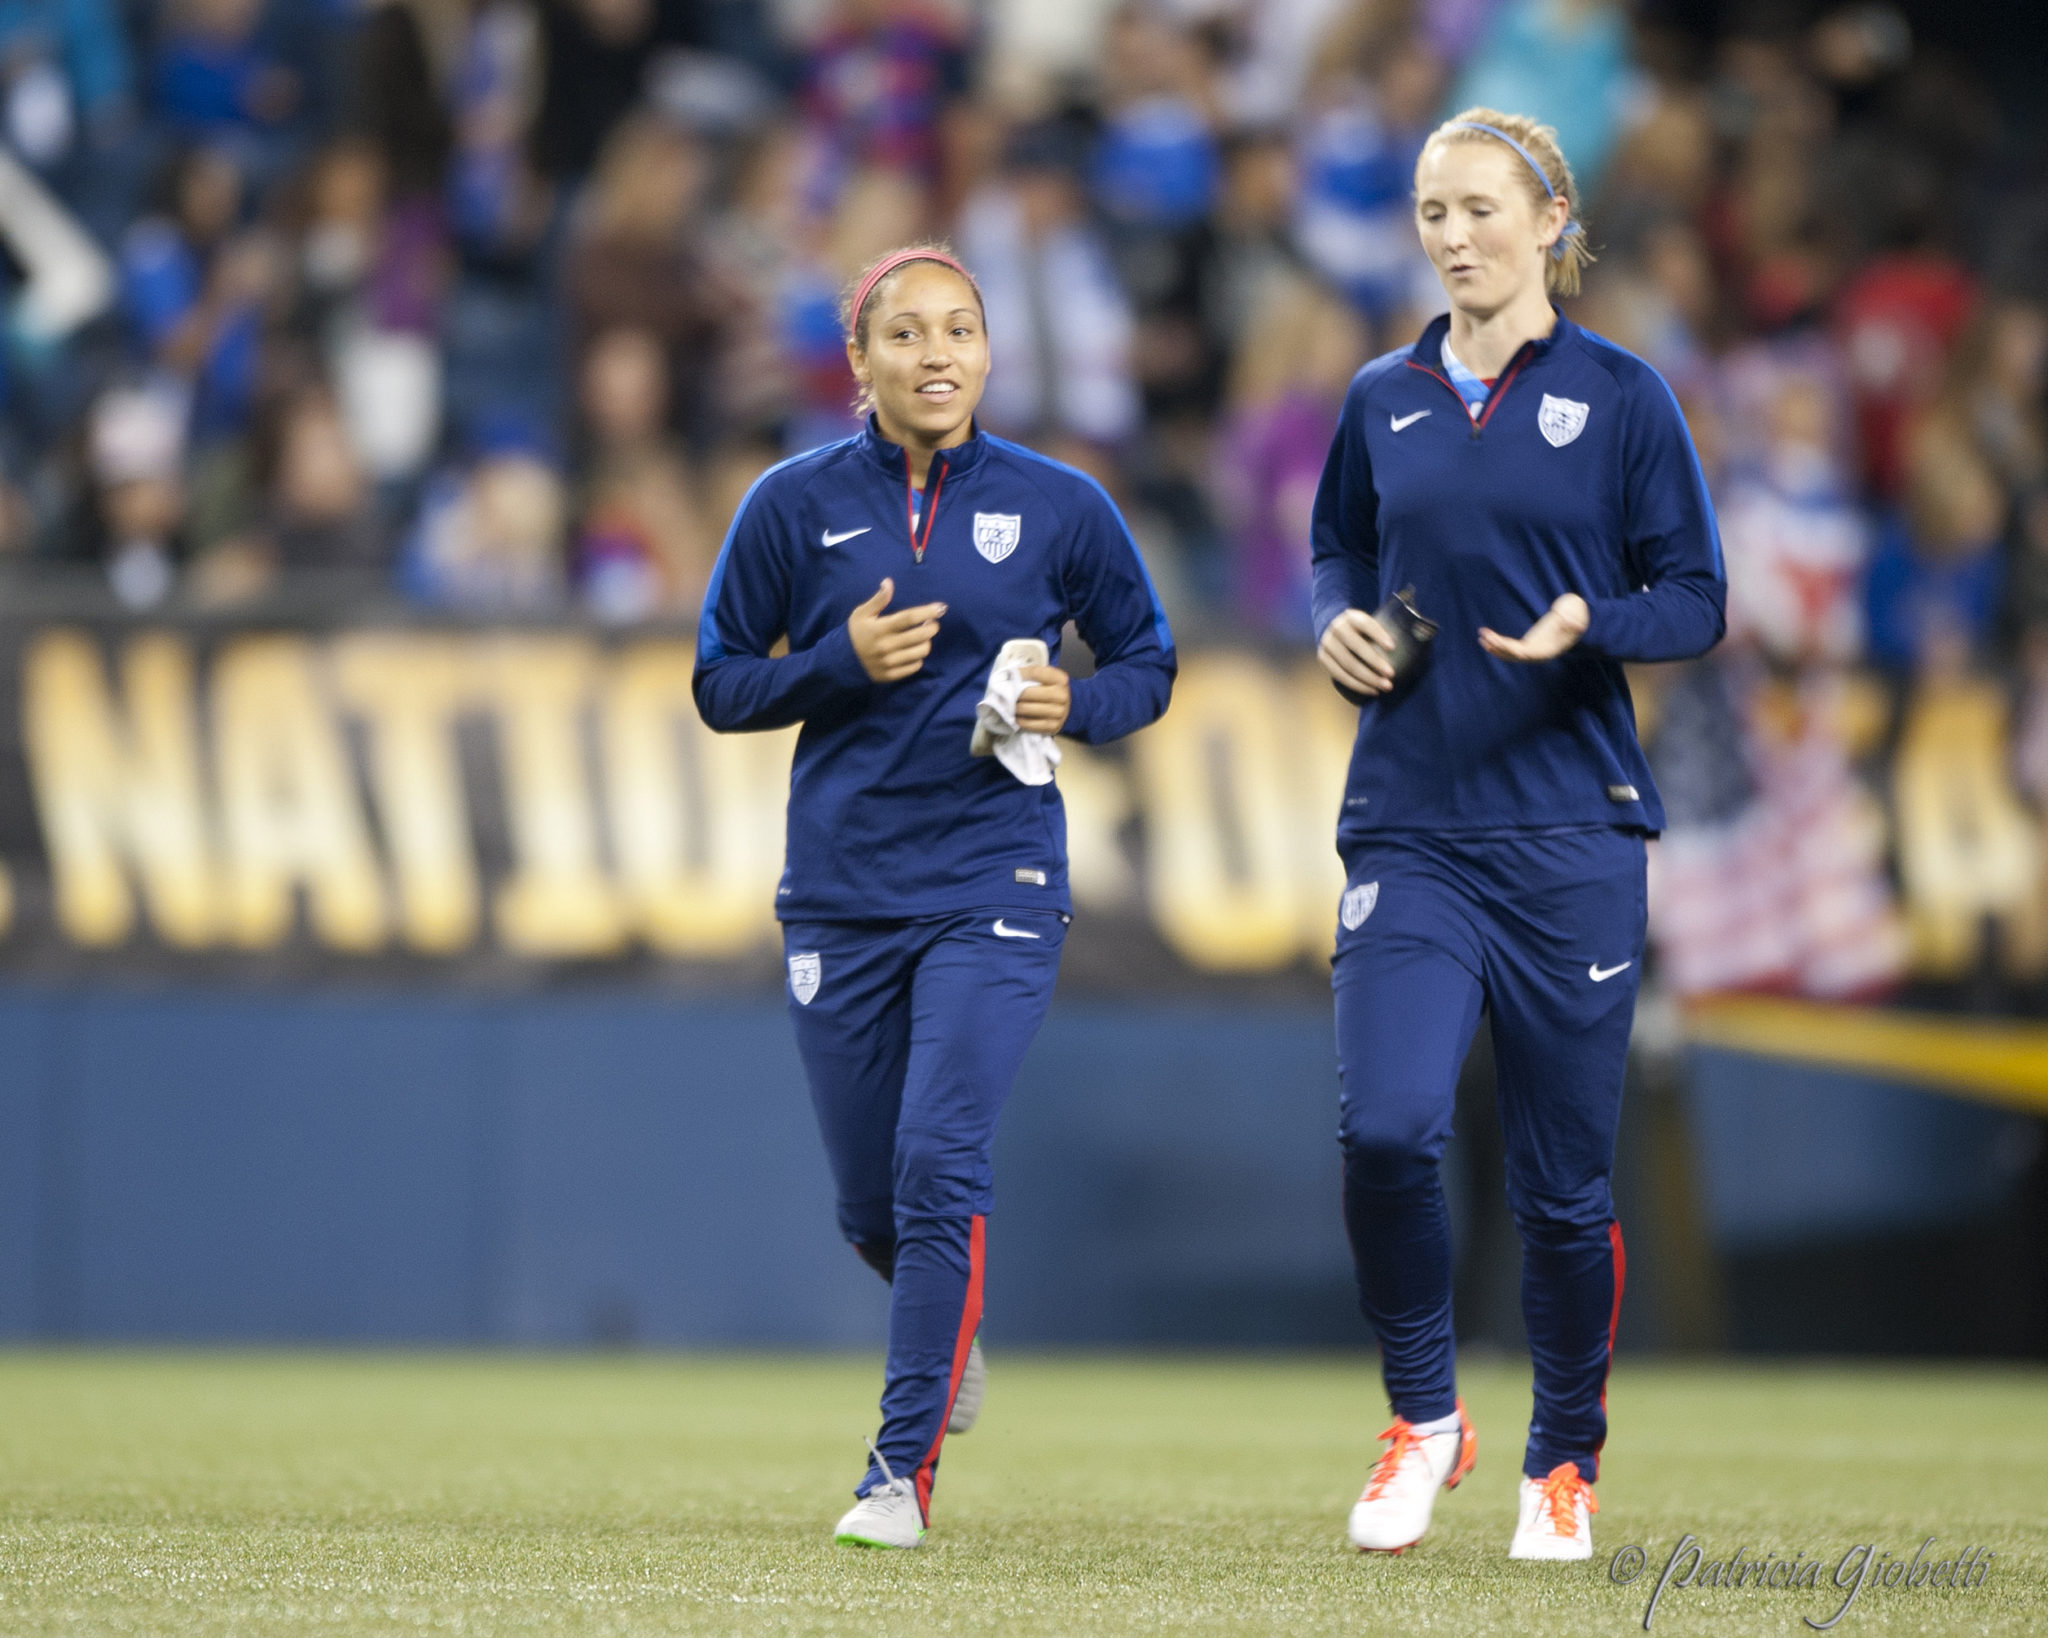 Youngsters Jaelene Hinkle (left) and Sam Mewis are both on the USWNT's CONCACAF Olympic qualifying tournament roster. (Photo Copyright Patricia Giobetti for The Equalizer)